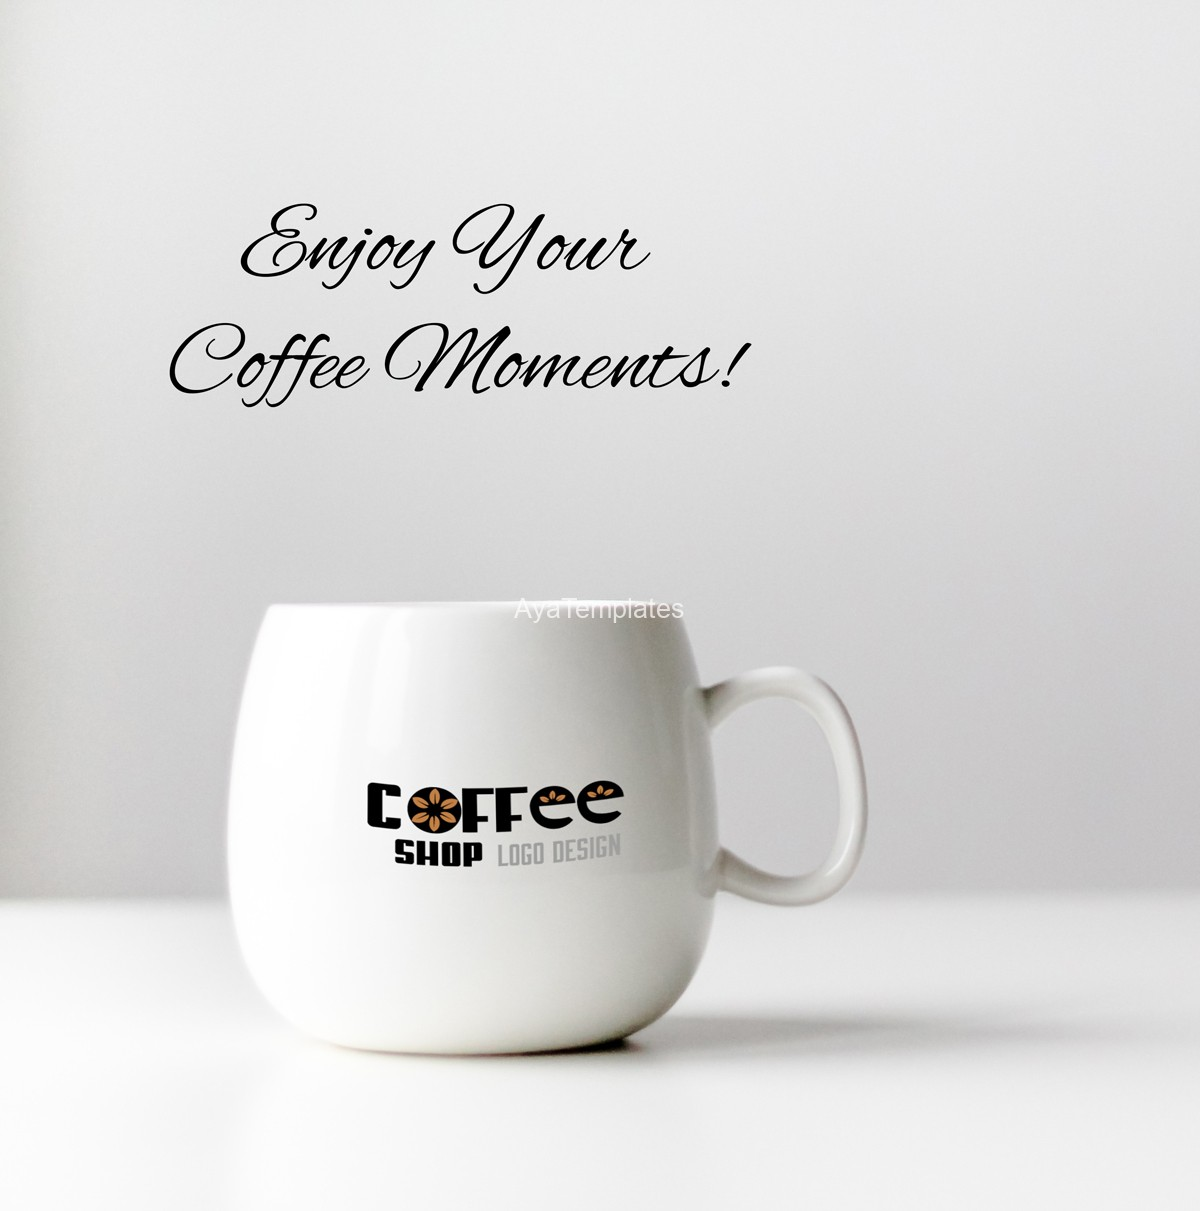 Enjoy-your-coffee-moments---cofee-shop-logo-design-and-branding